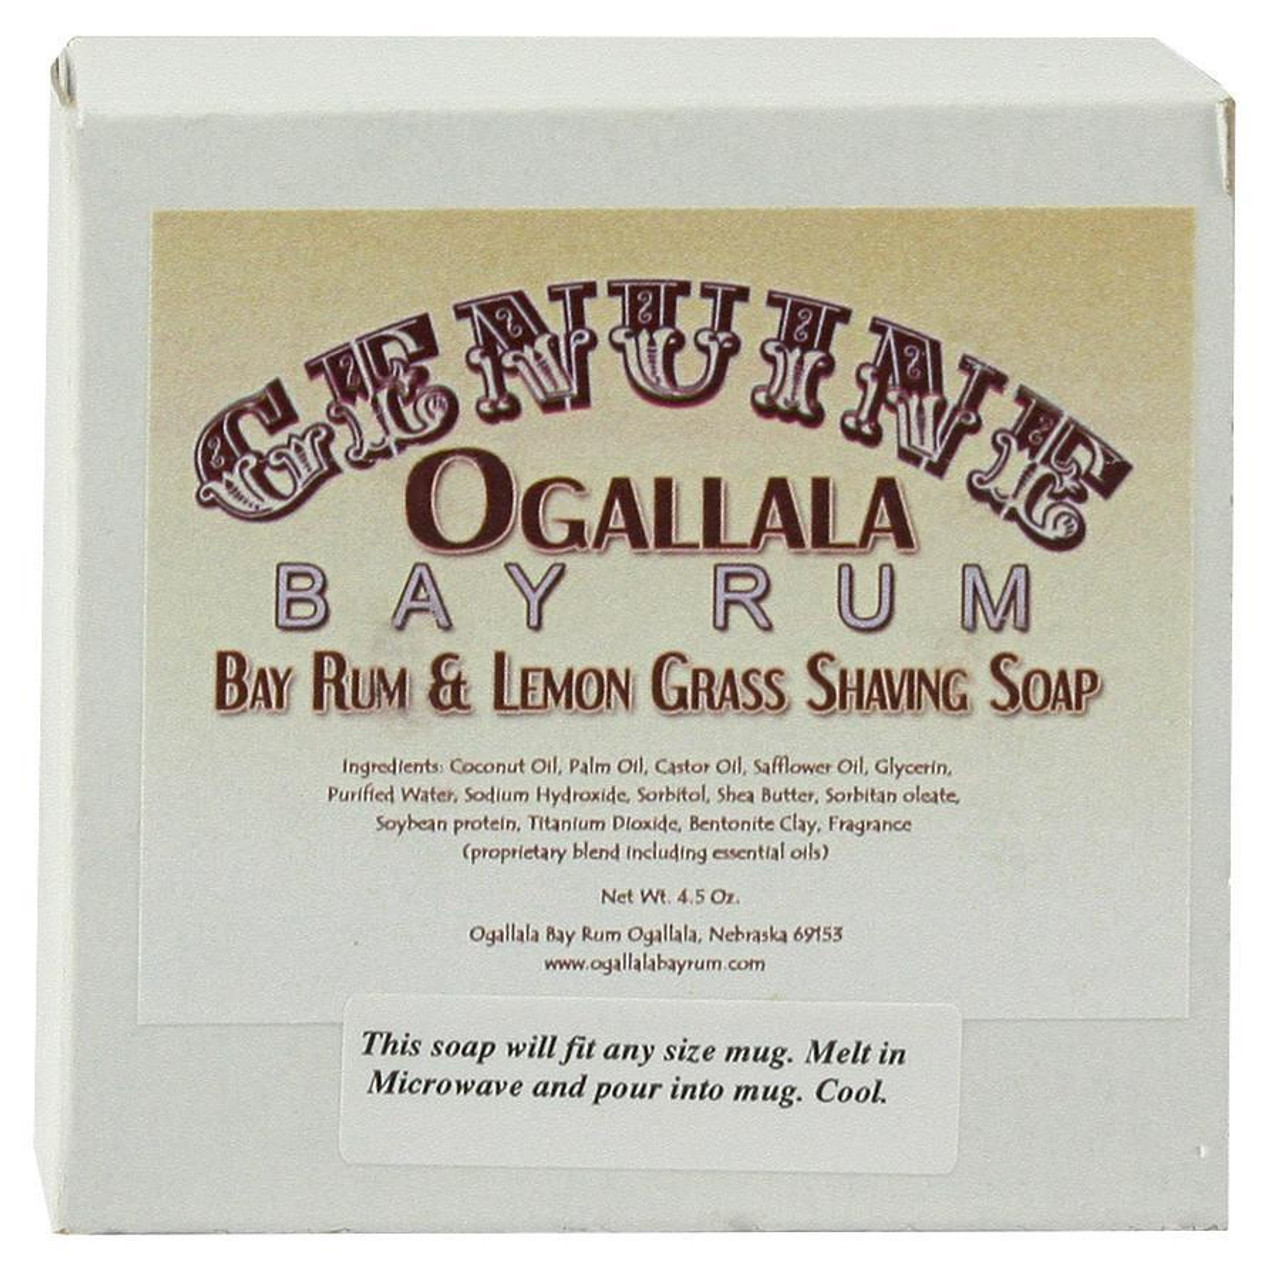 Ogallala Bay Rum & Lemongrass Shave Soap, 4.5oz